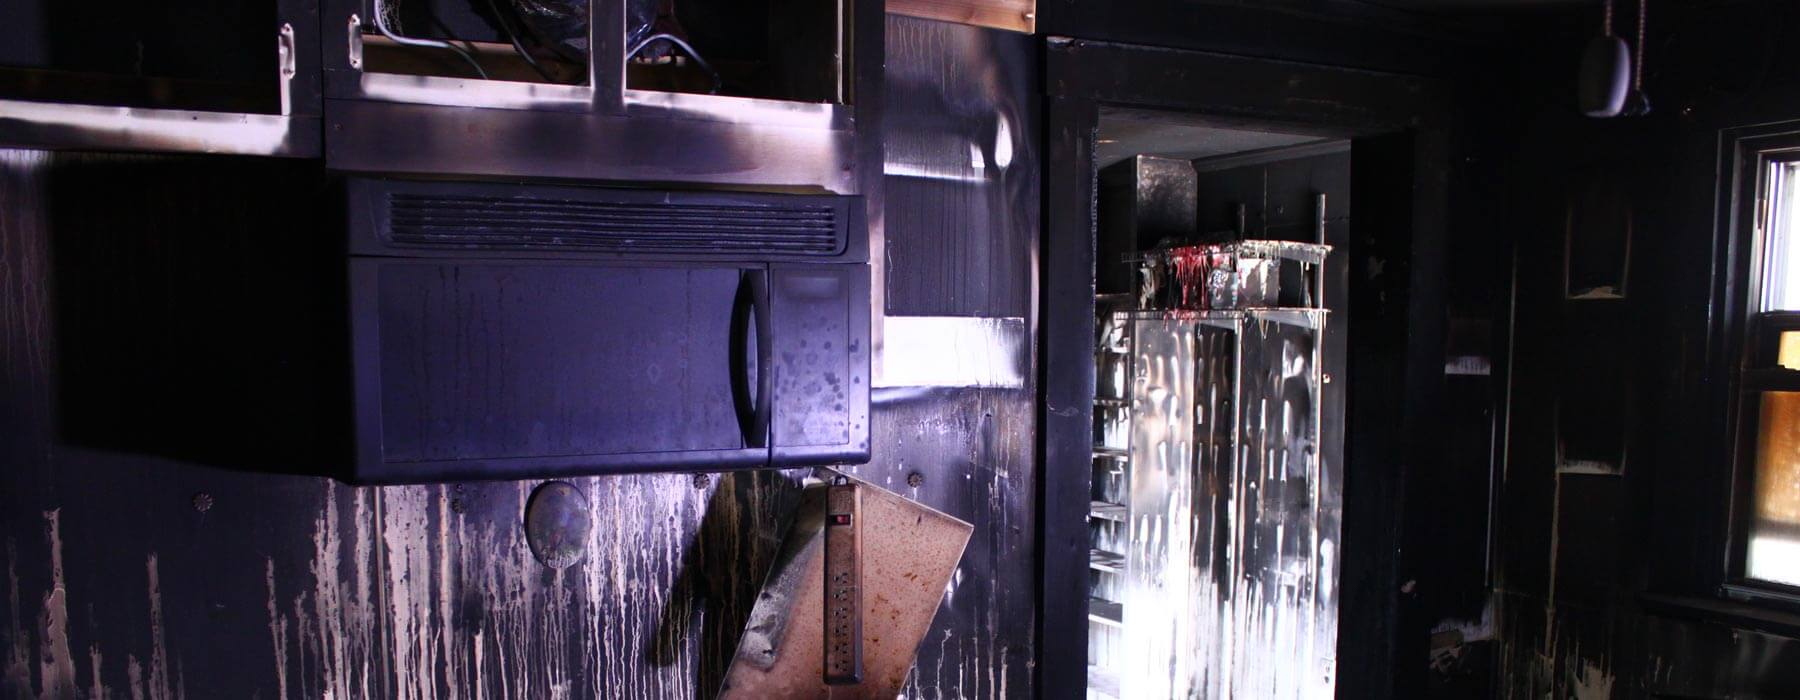 Fire damage restoration kitchen